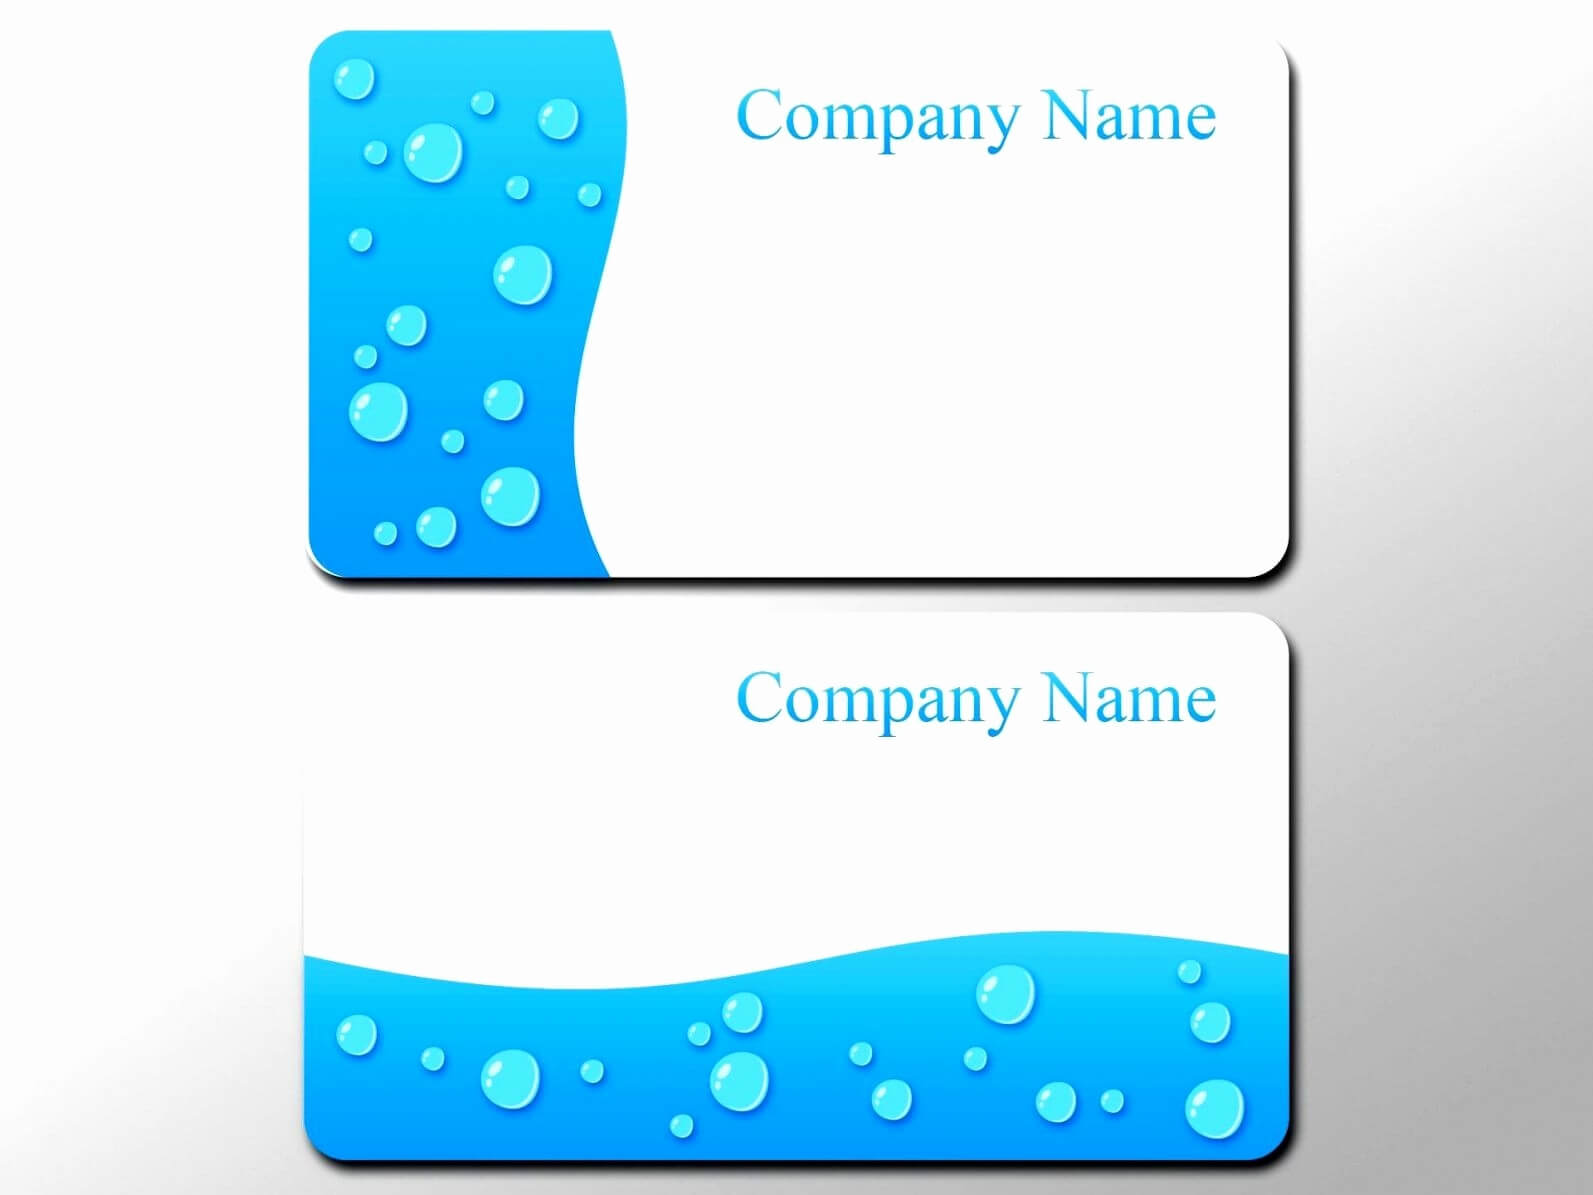 Business Card Format Photoshop Template Cc Beautiful For with regard to Business Card Size Template Photoshop